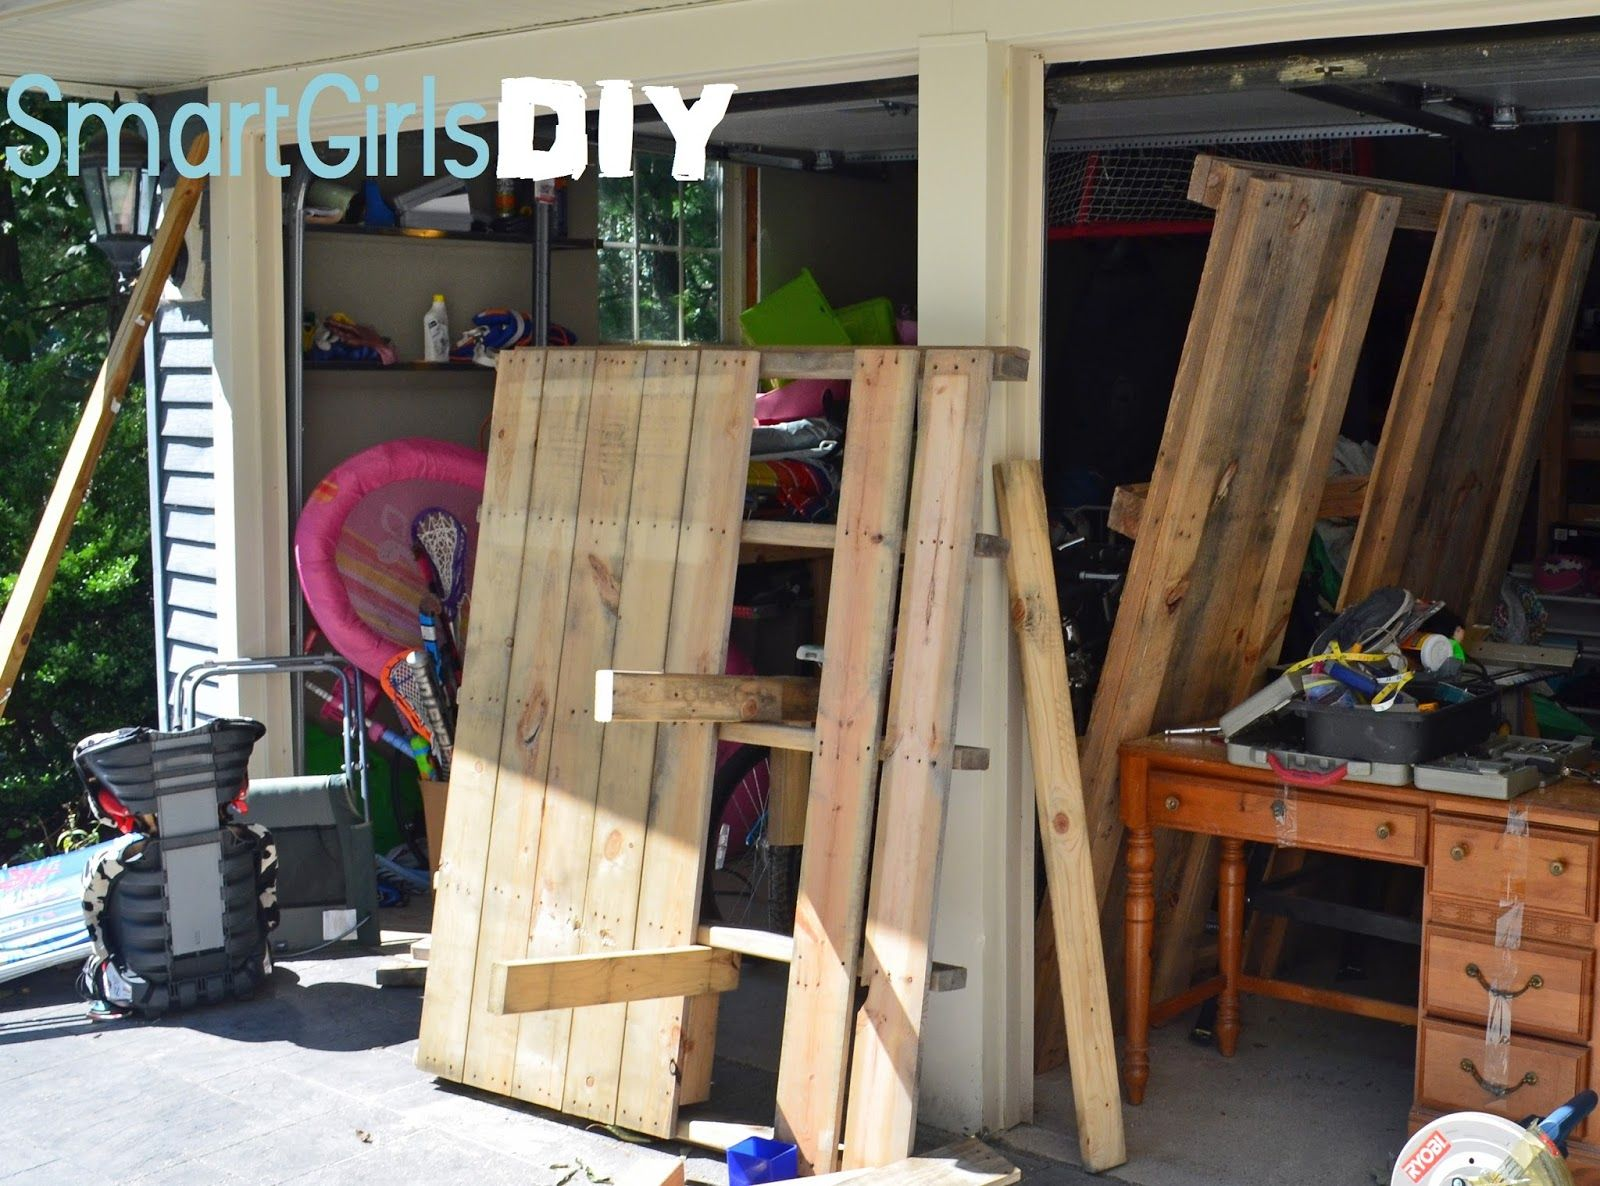 Bike And Beach Chair Storage Using Pallets To Make Cheap Diy Shelf In Garage